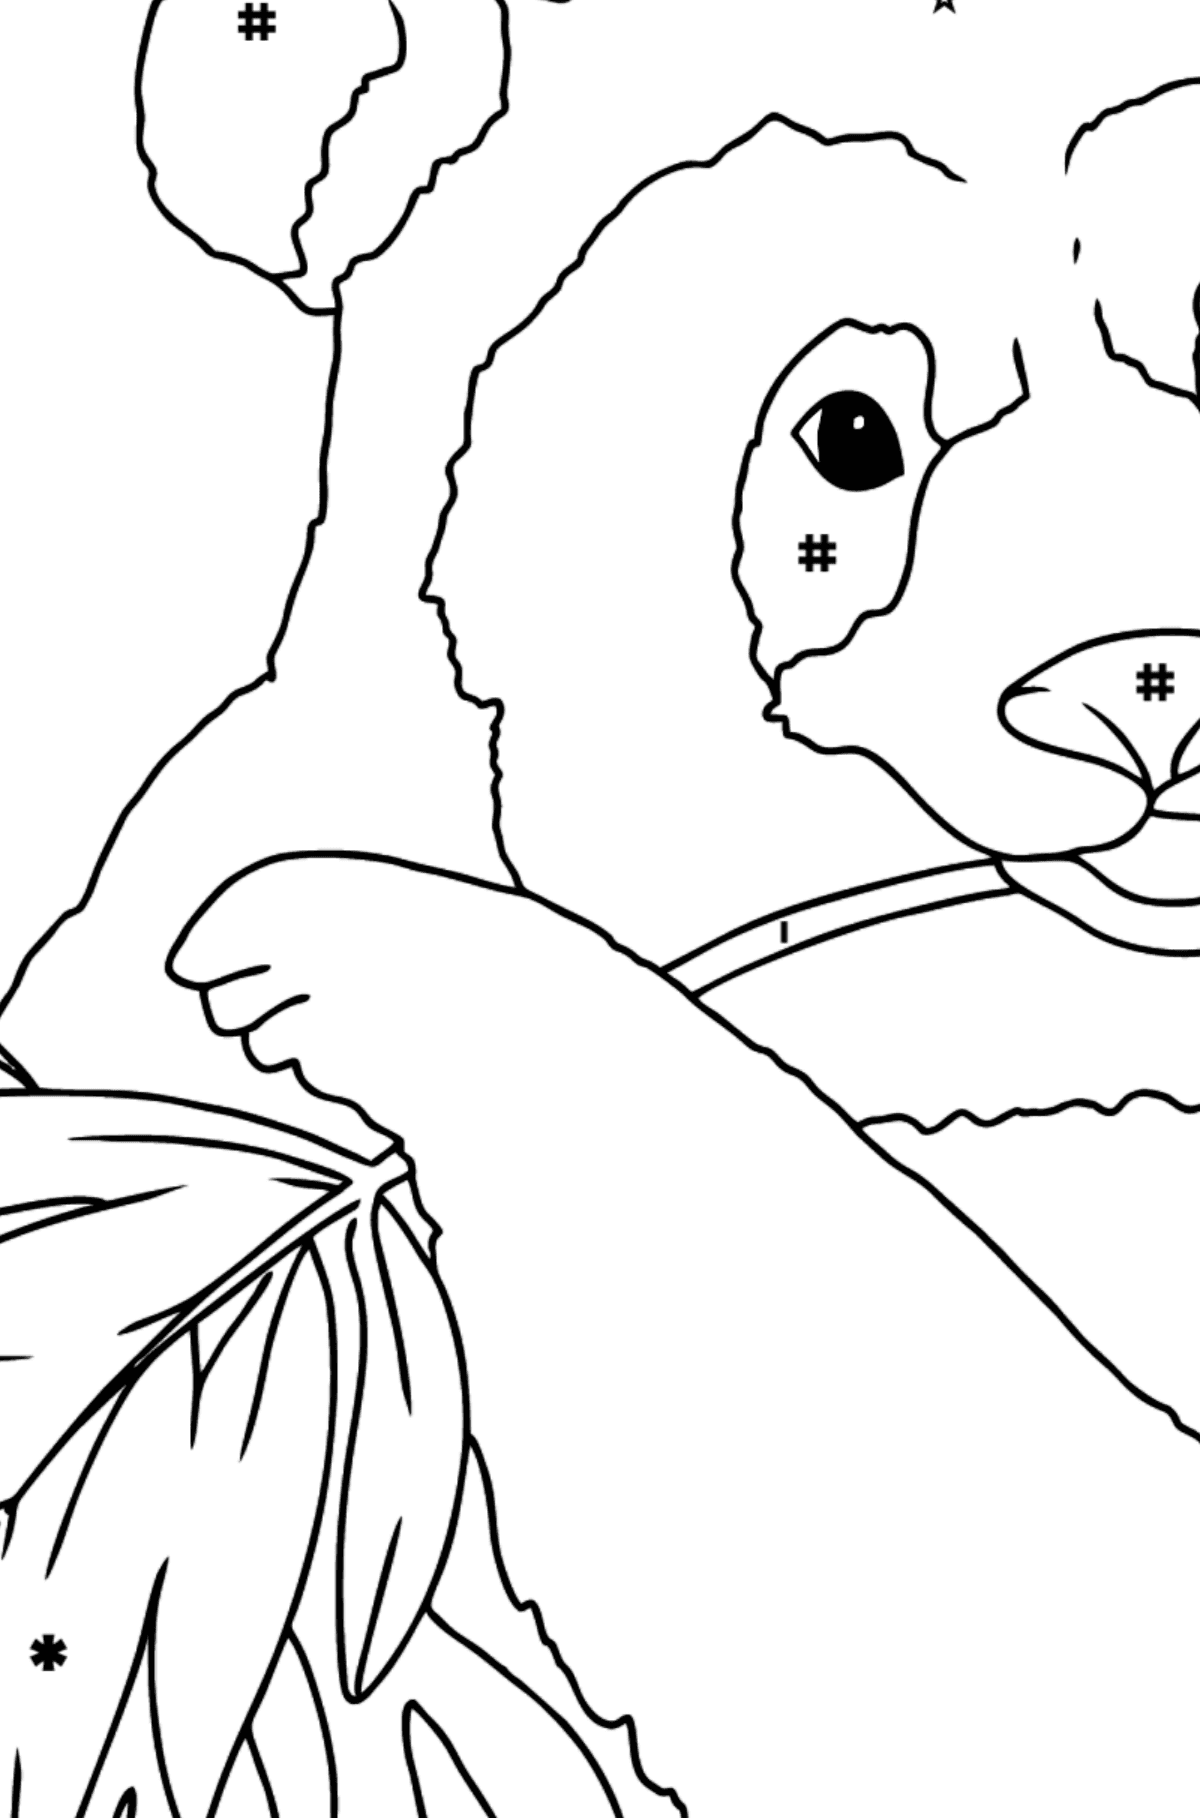 Coloring Page  - A Panda is Eating Leaves - Coloring by Symbols and Geometric Shapes for Kids